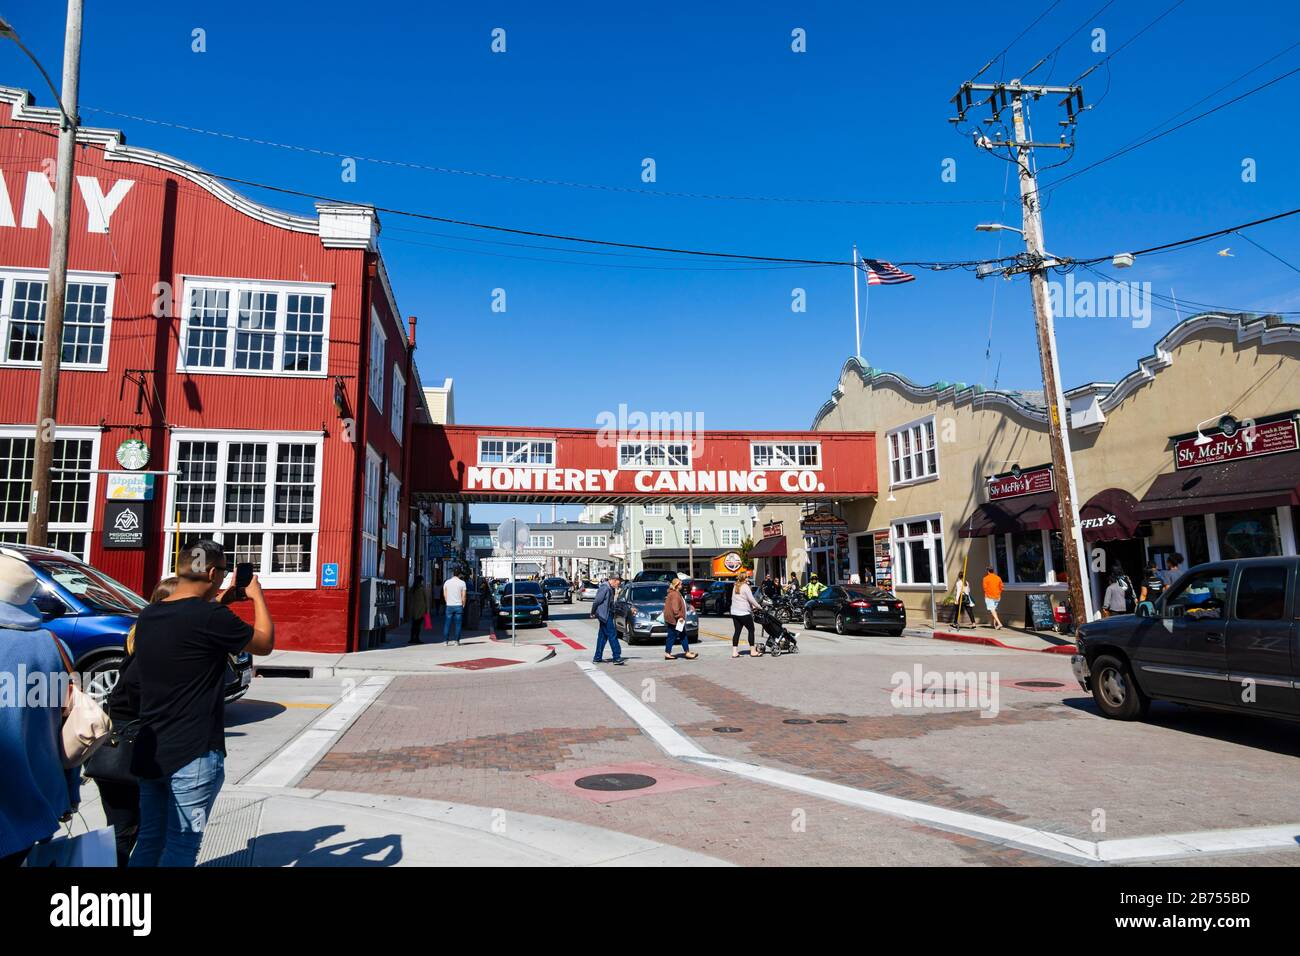 Cannery Row and sardine factories, Monterey, California, USA Stock Photo